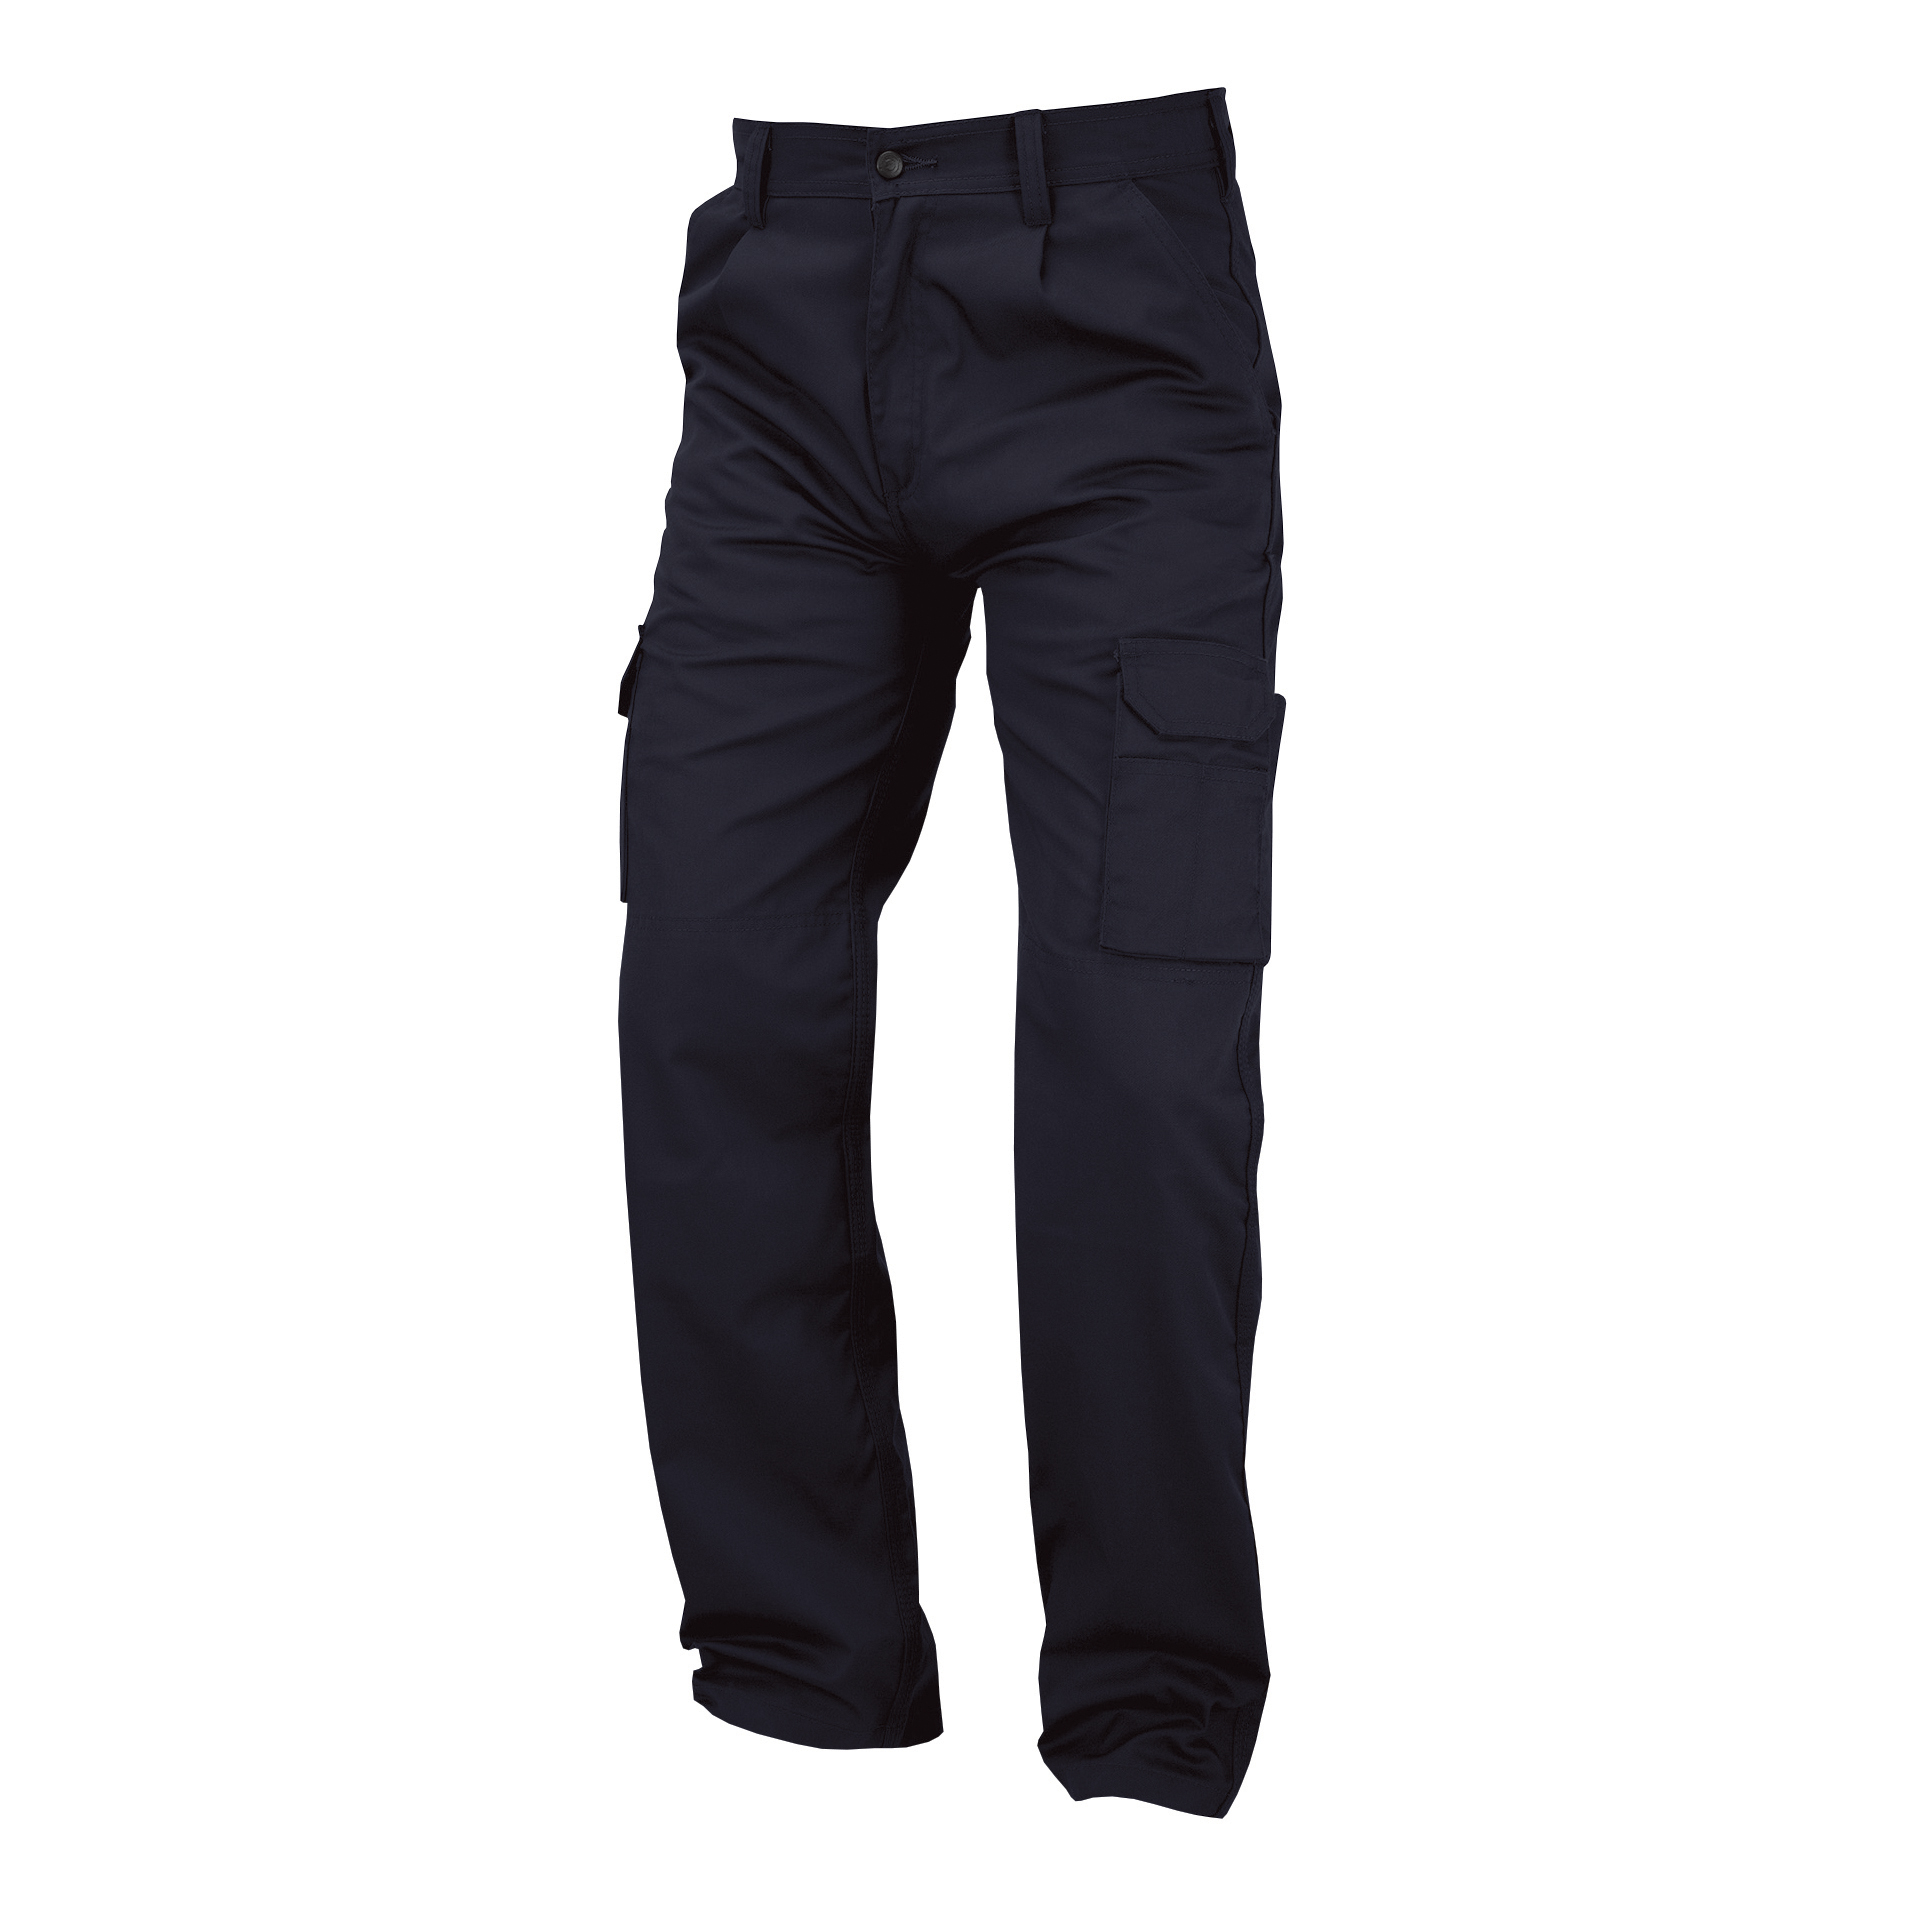 Combat / Cargo Combat Trousers Polycotton with Pockets 36in Long Navy Blue Ref PCTHWN36T *1-3 Days Lead Time*